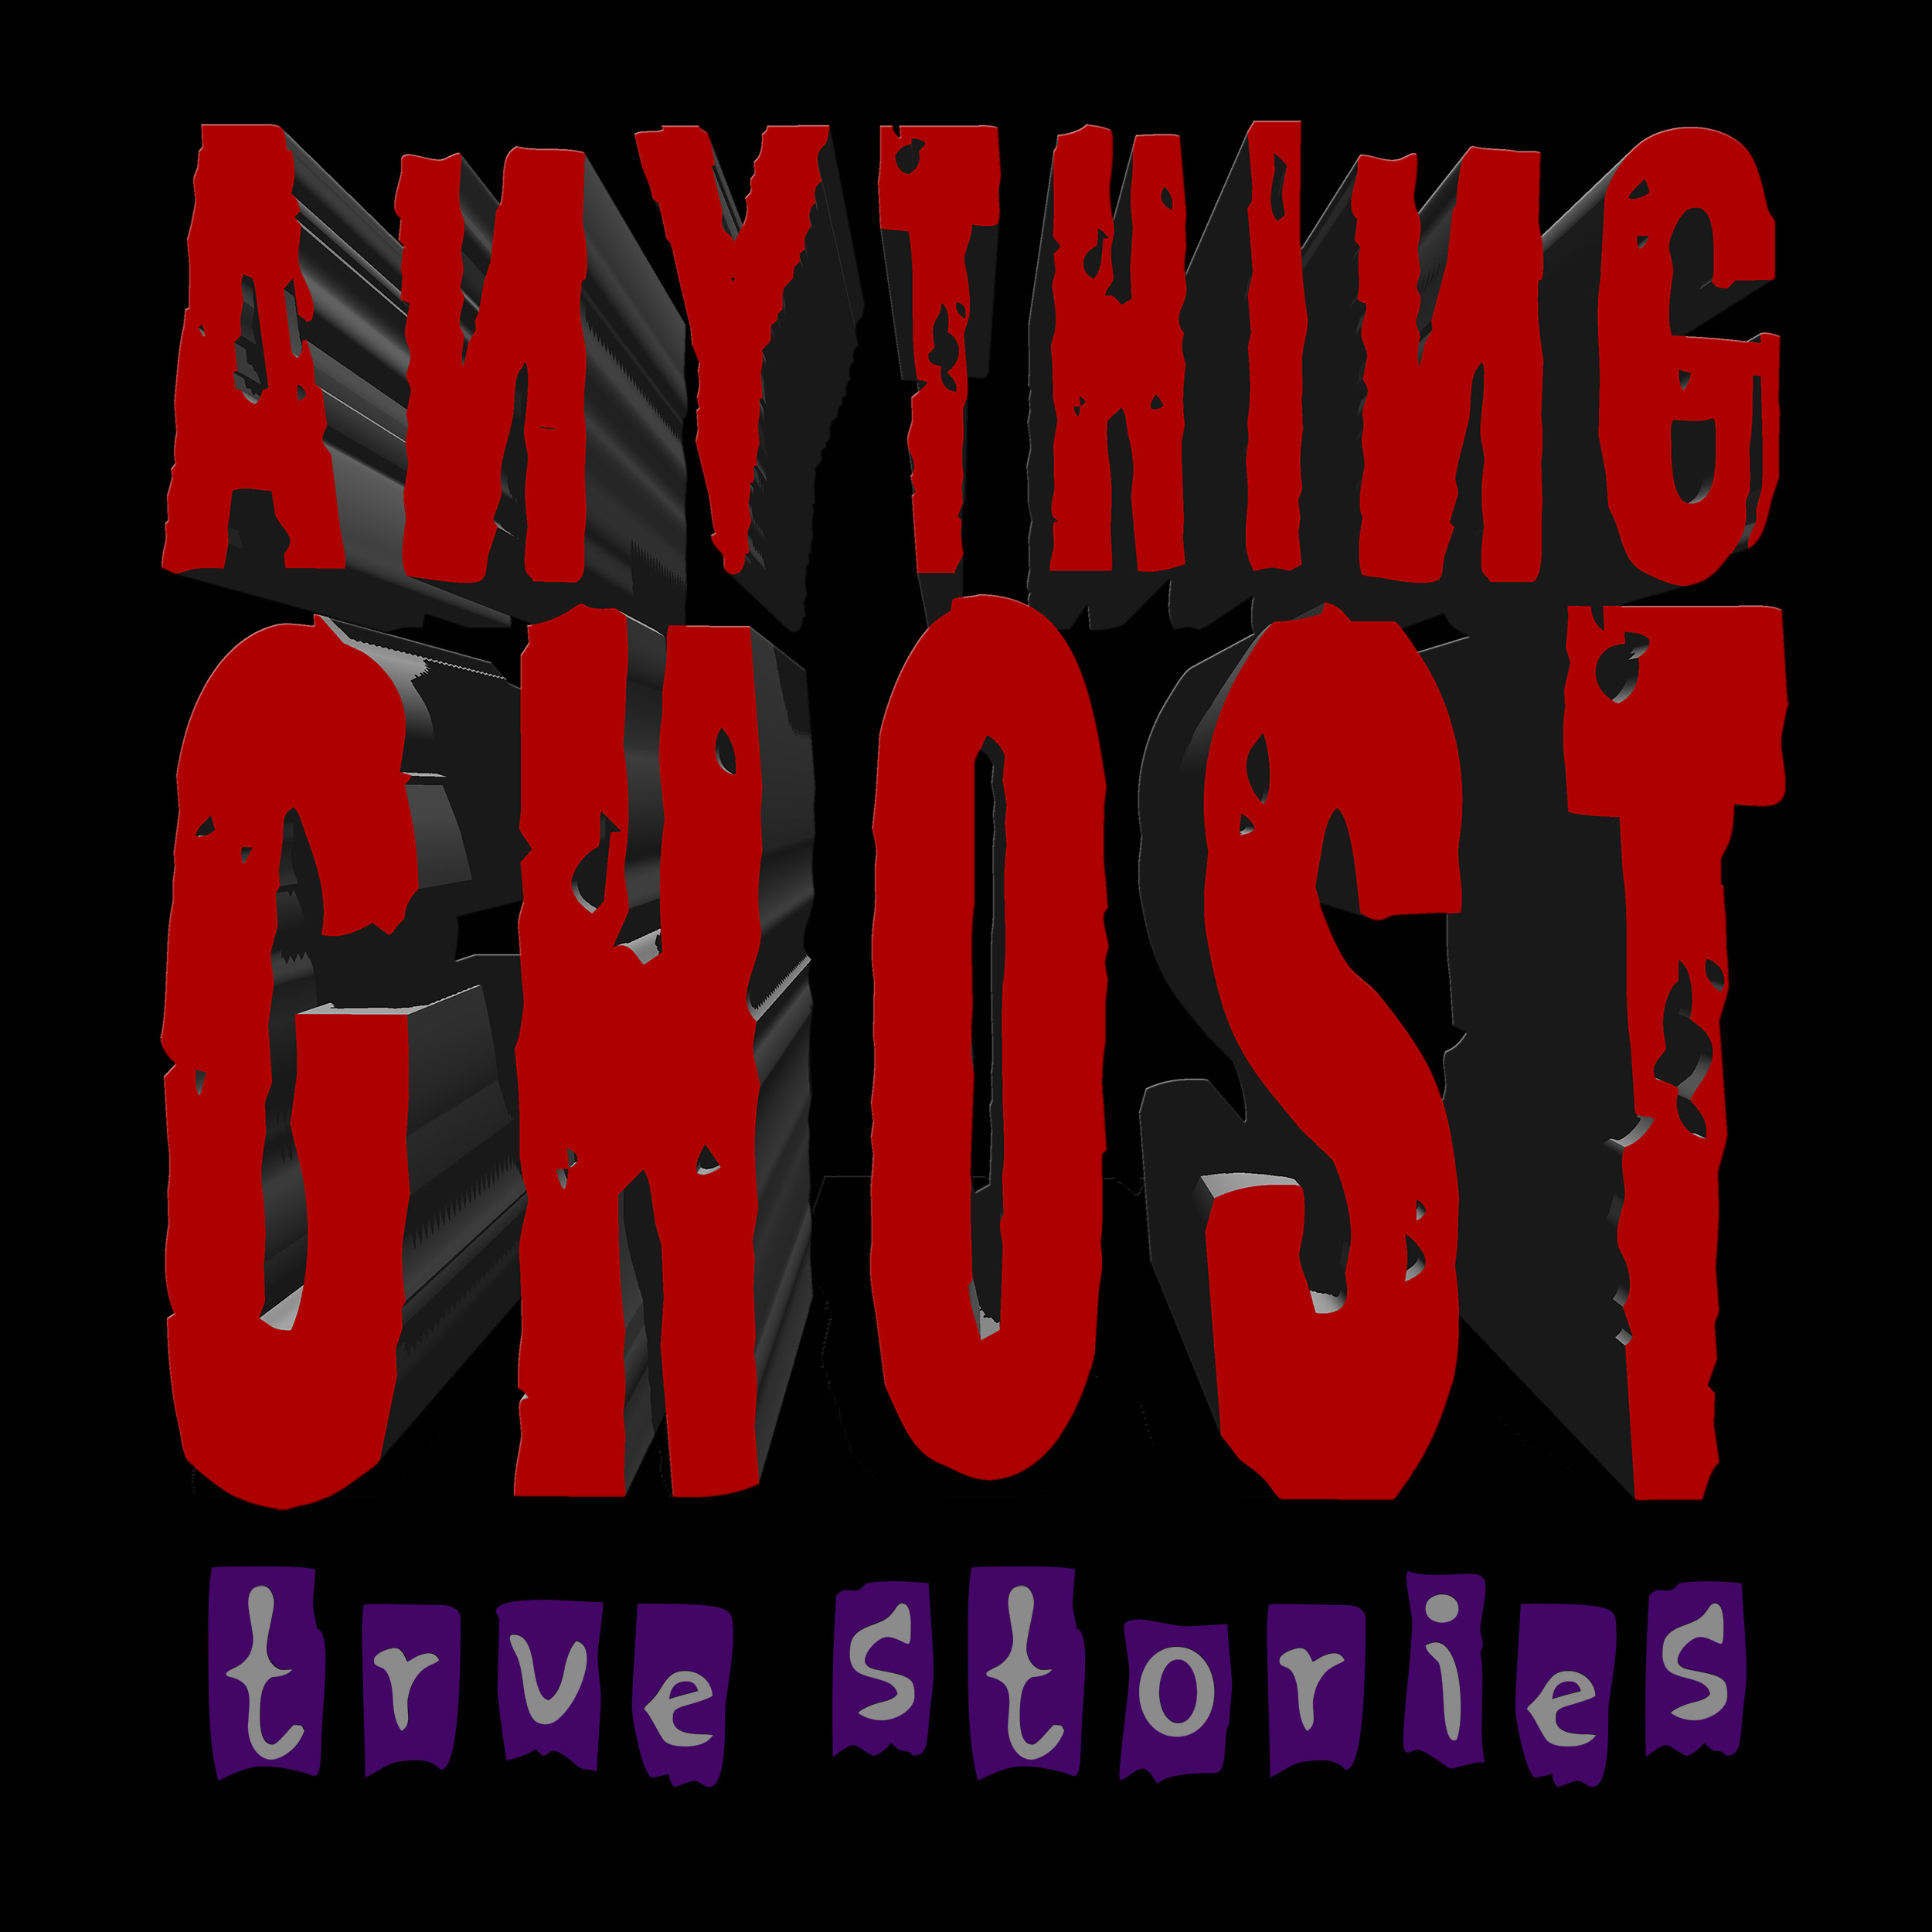 Anything Ghost Show #274 - Ghost Stories from the U.S. and the U.K. Including Ghost of a Murdered Brother, the Haunted Hairdresser, a Haunted Garden House in Yorkshire, and Many Other True Ghost Stories!